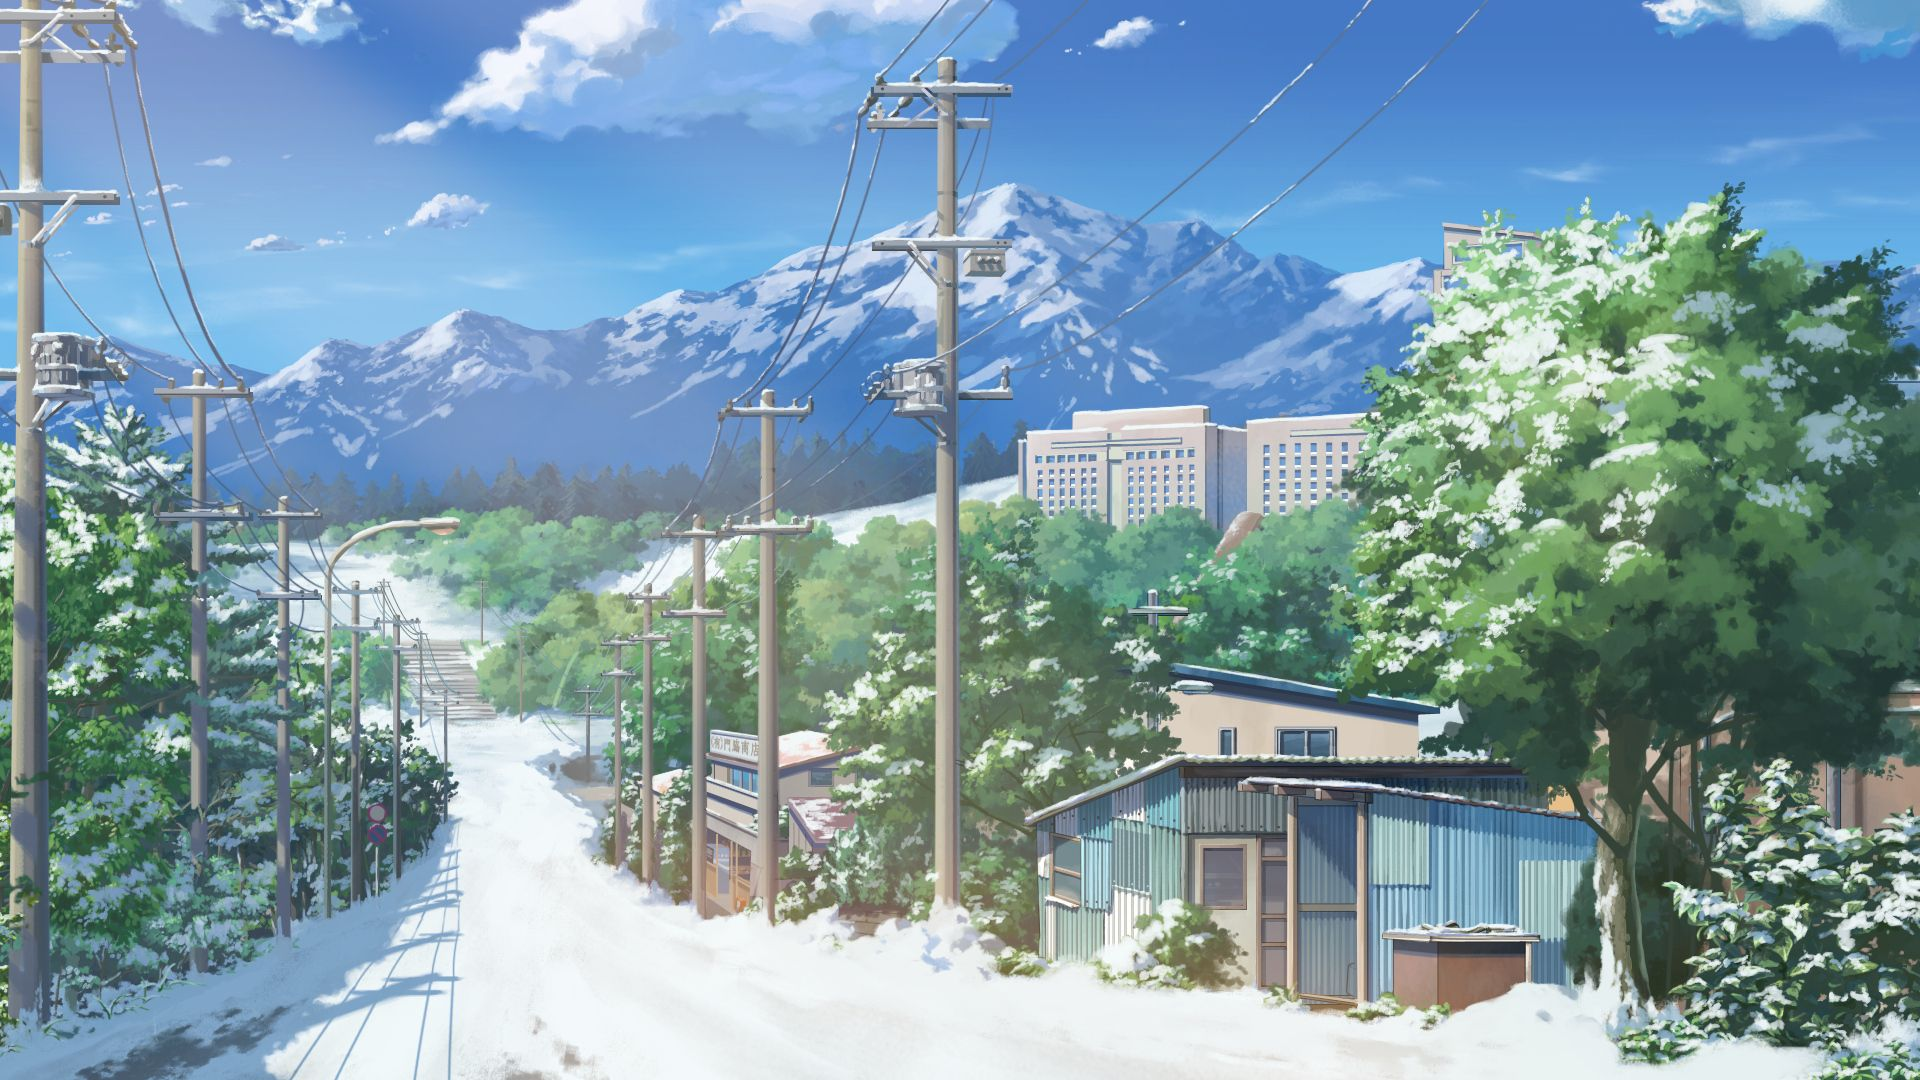 Anime Japan Cityscape wallpaper | Amazing Animated ...